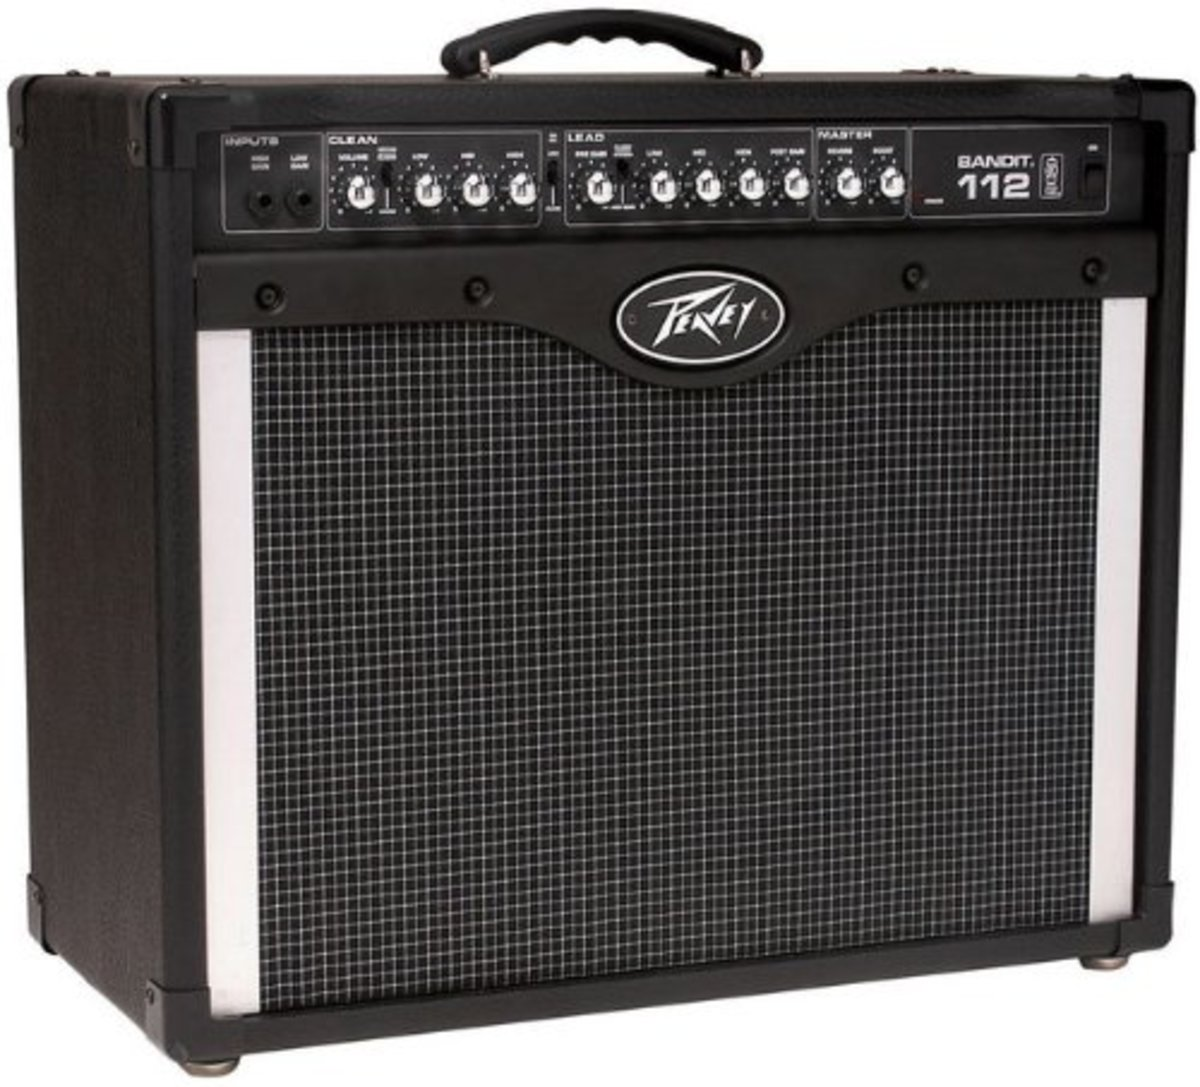 Guide to Choosing the Best Guitar Amp for the Money